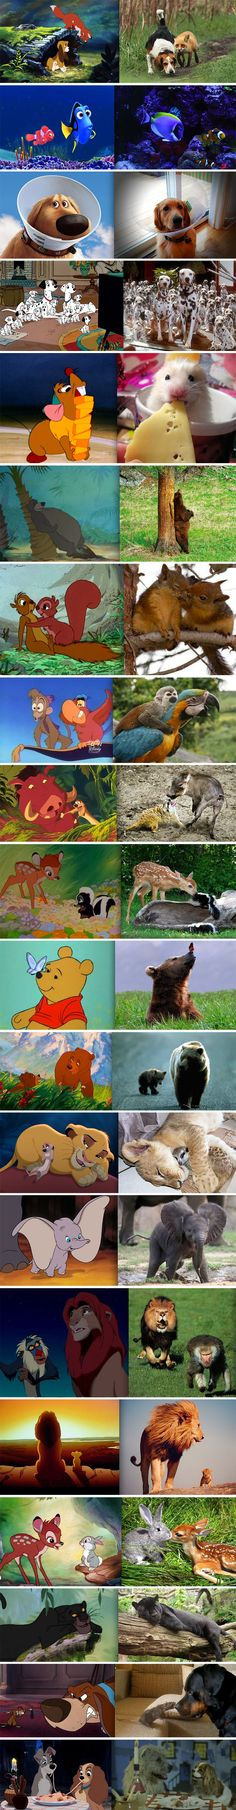 Disney characters in real life!:) Awwwwww